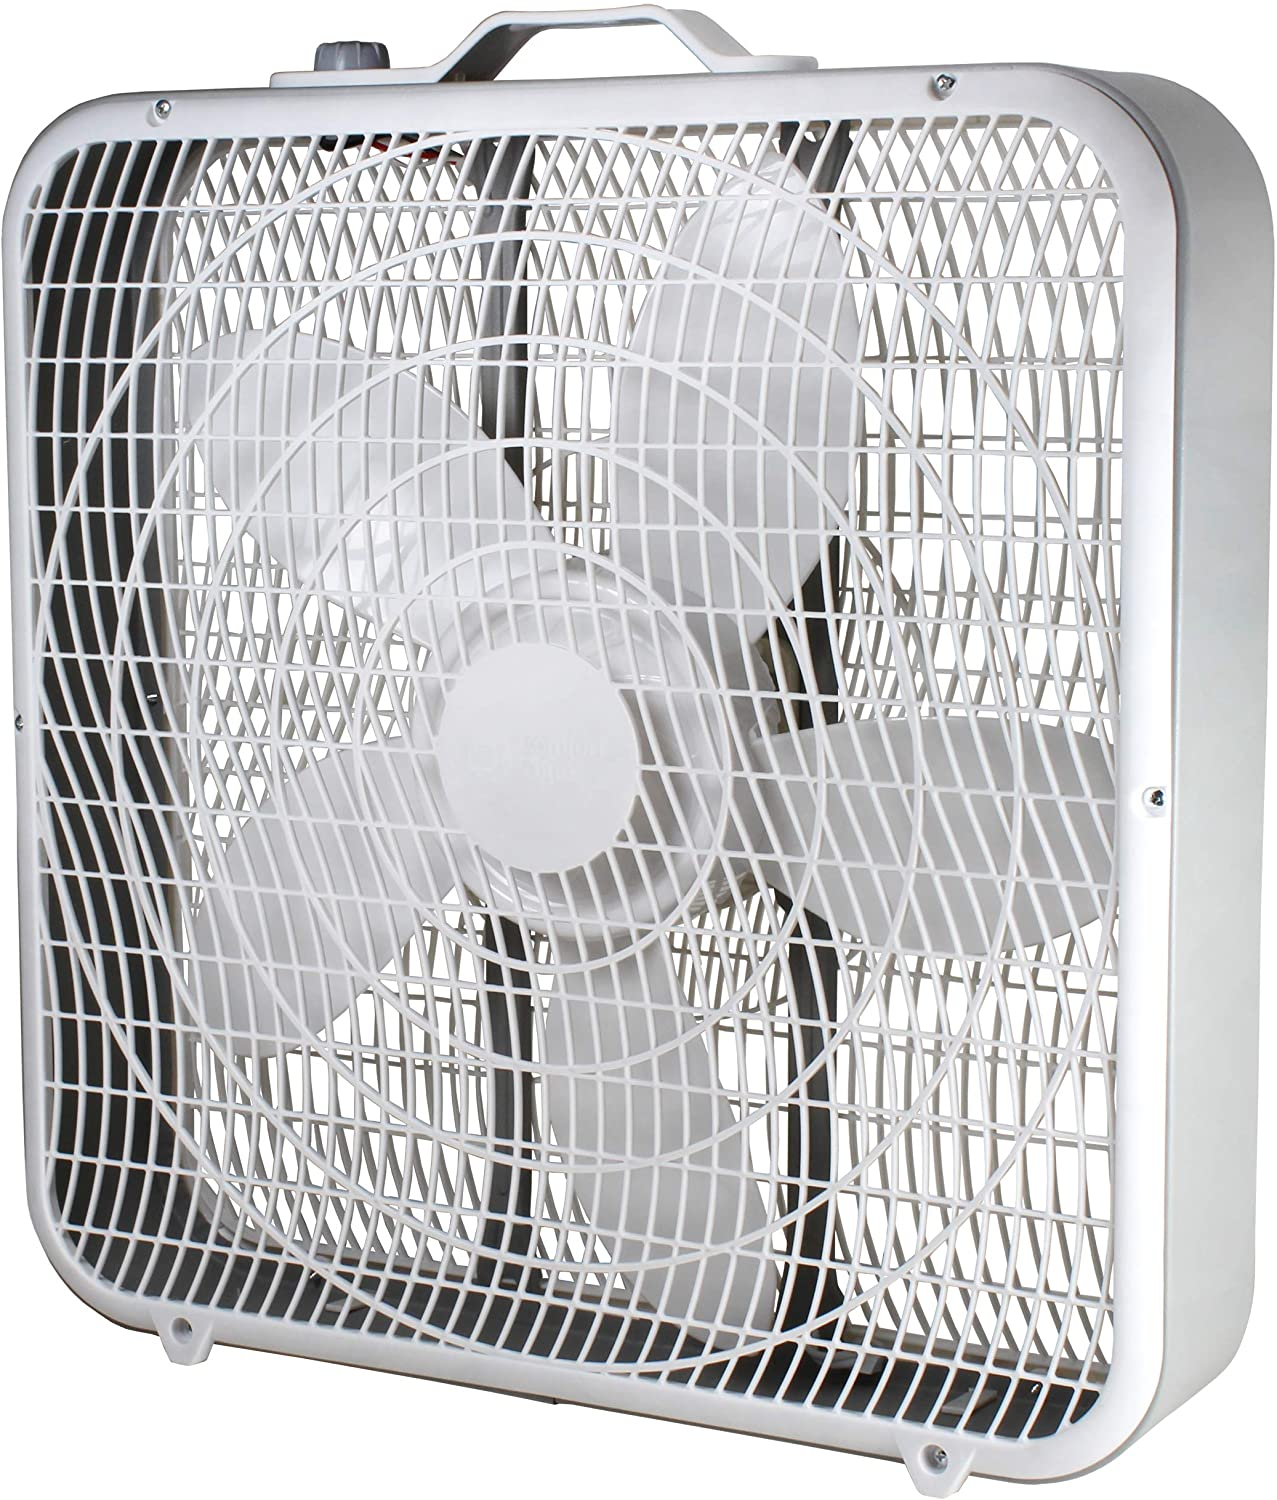 Comfort Zone CZ200A 20-Inch 3-Speed Box Fan